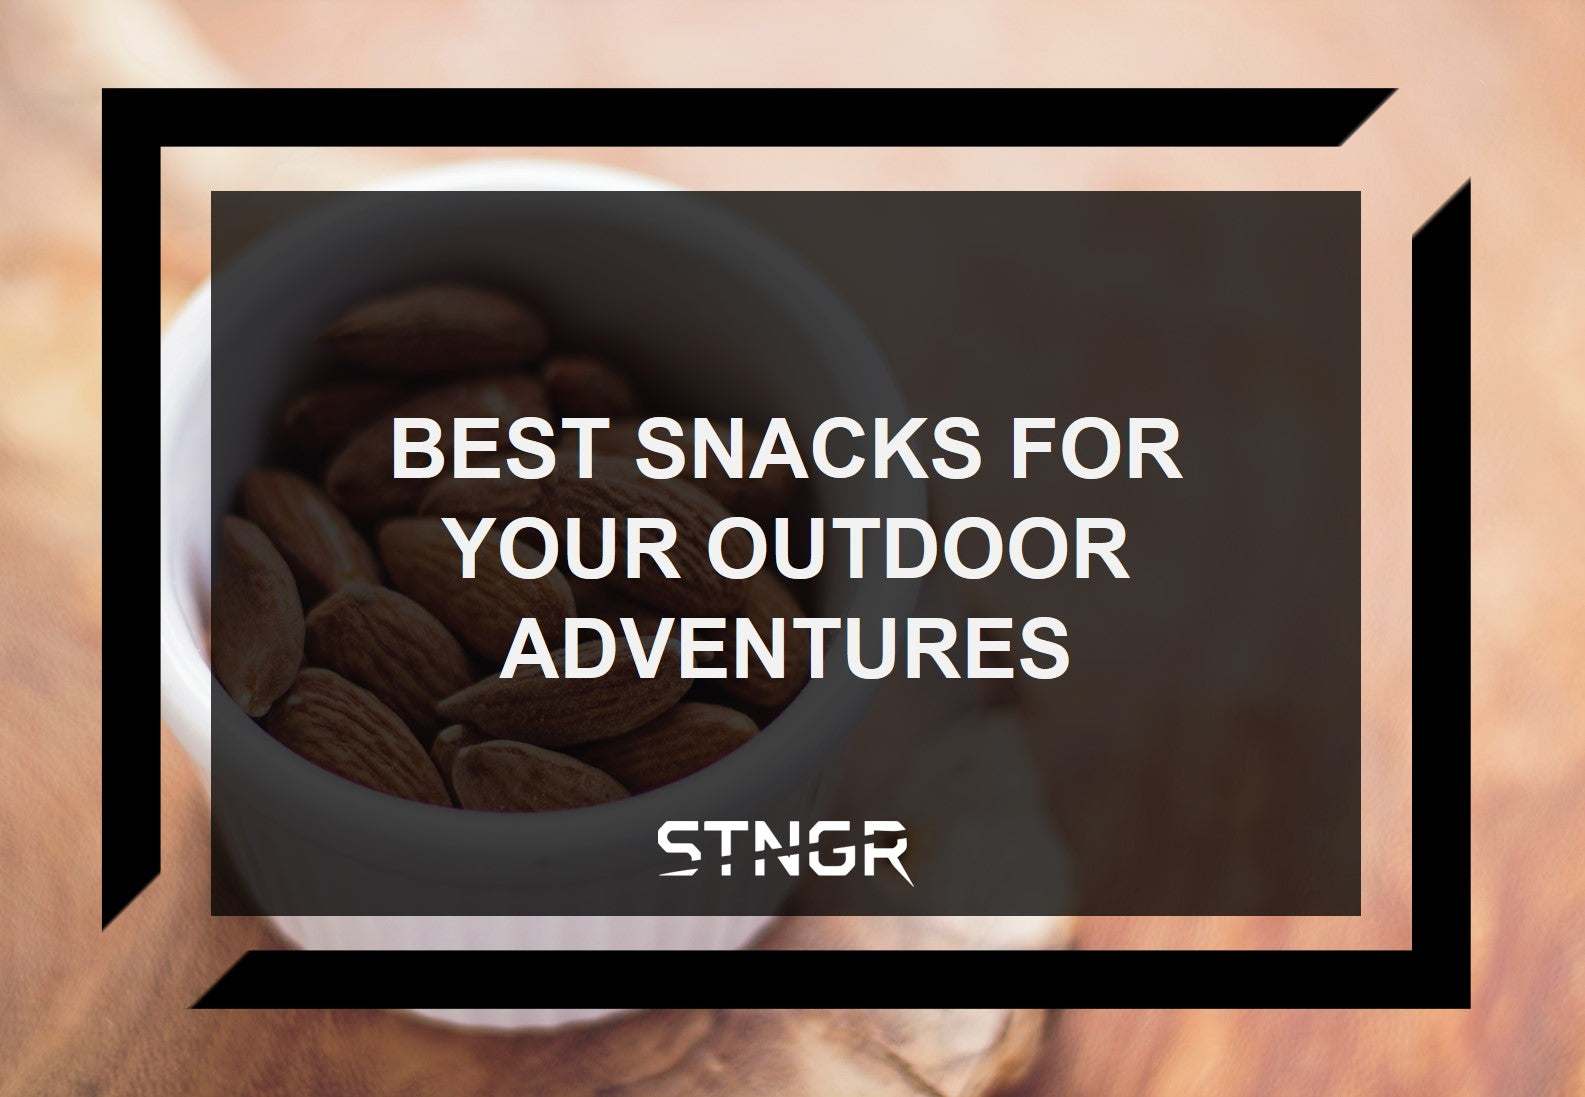 Best Snacks for Your Outdoor Adventures